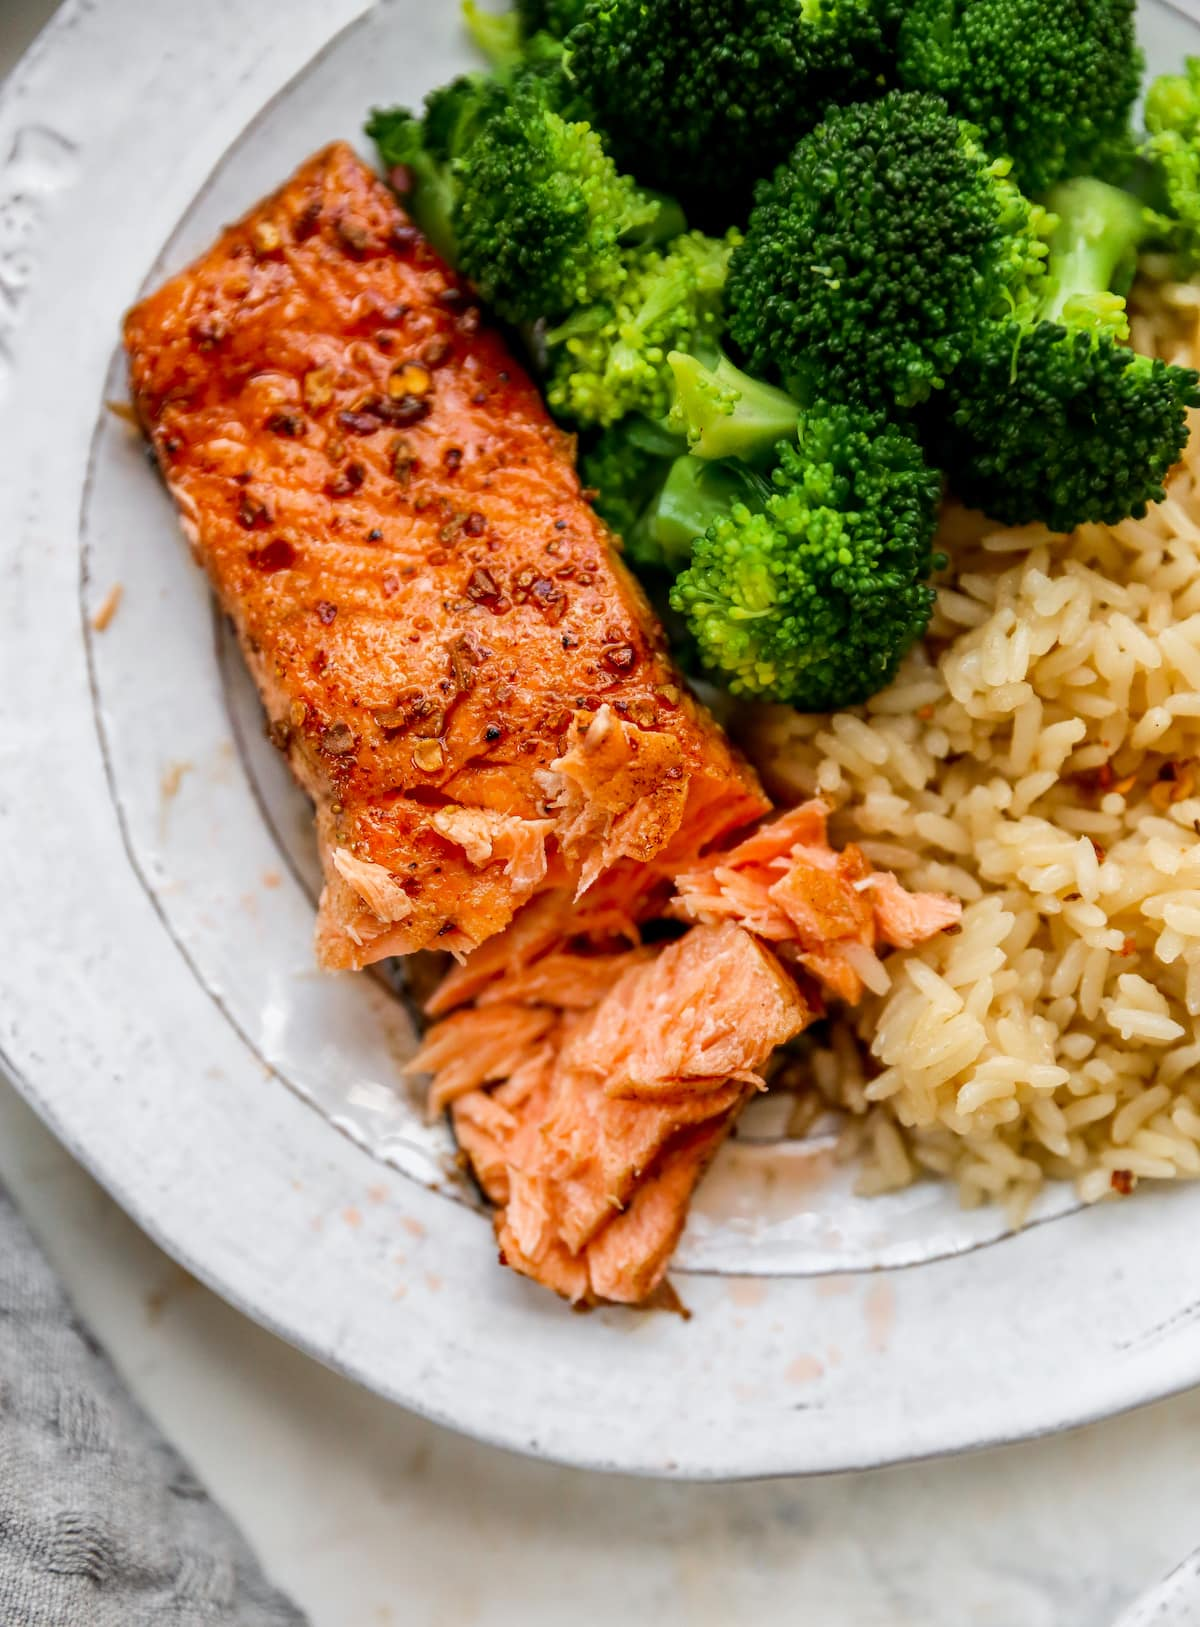 Plate with a piece of balsamic salmon, brown rice and broccoli. Salmon has a bite taken out of it.